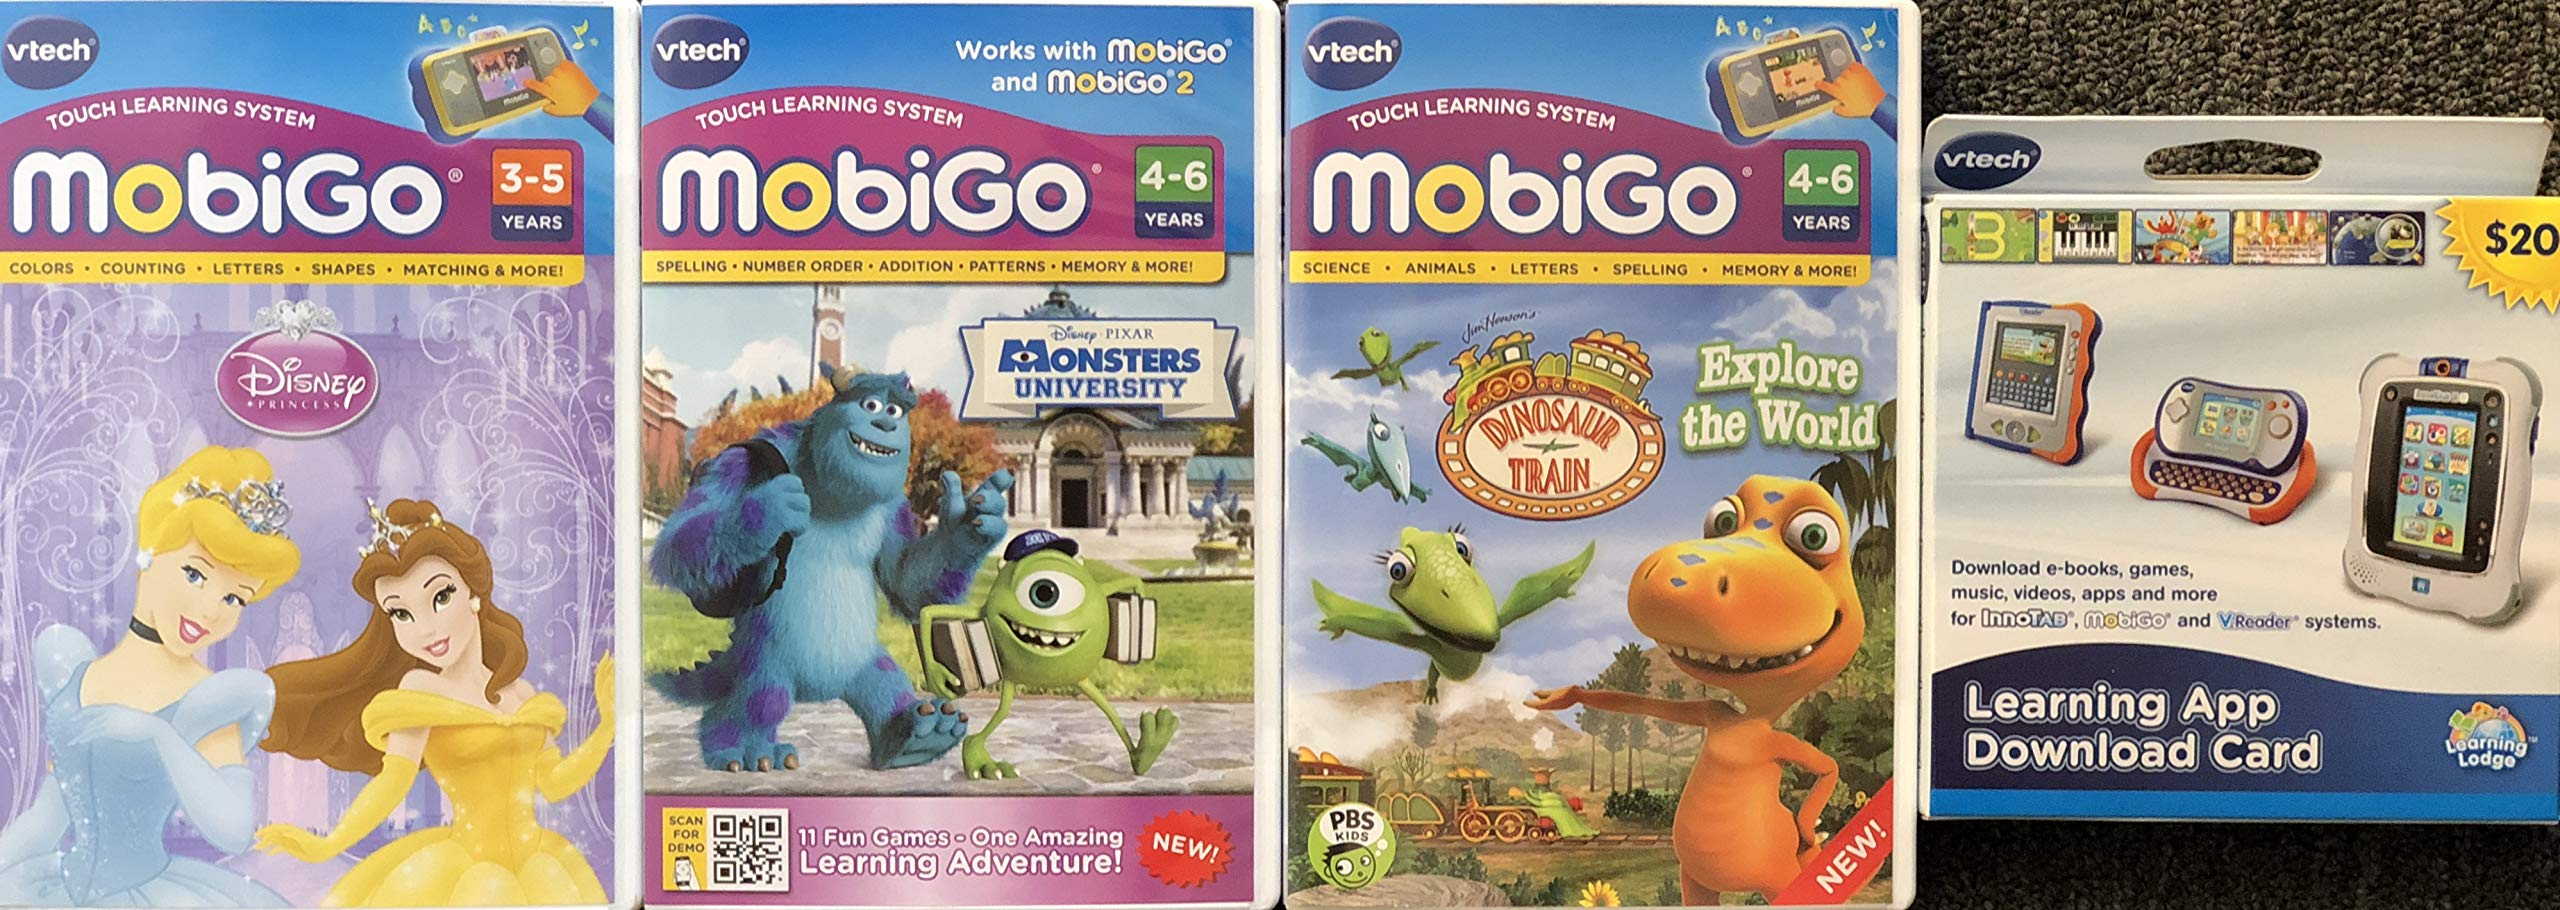 MobiGo Vtech Touch Learning System Bundle Includes: 3X Games - Disney Princess, Dinosaur Train, Monsters University & $20 Download Card (Bundle Three)